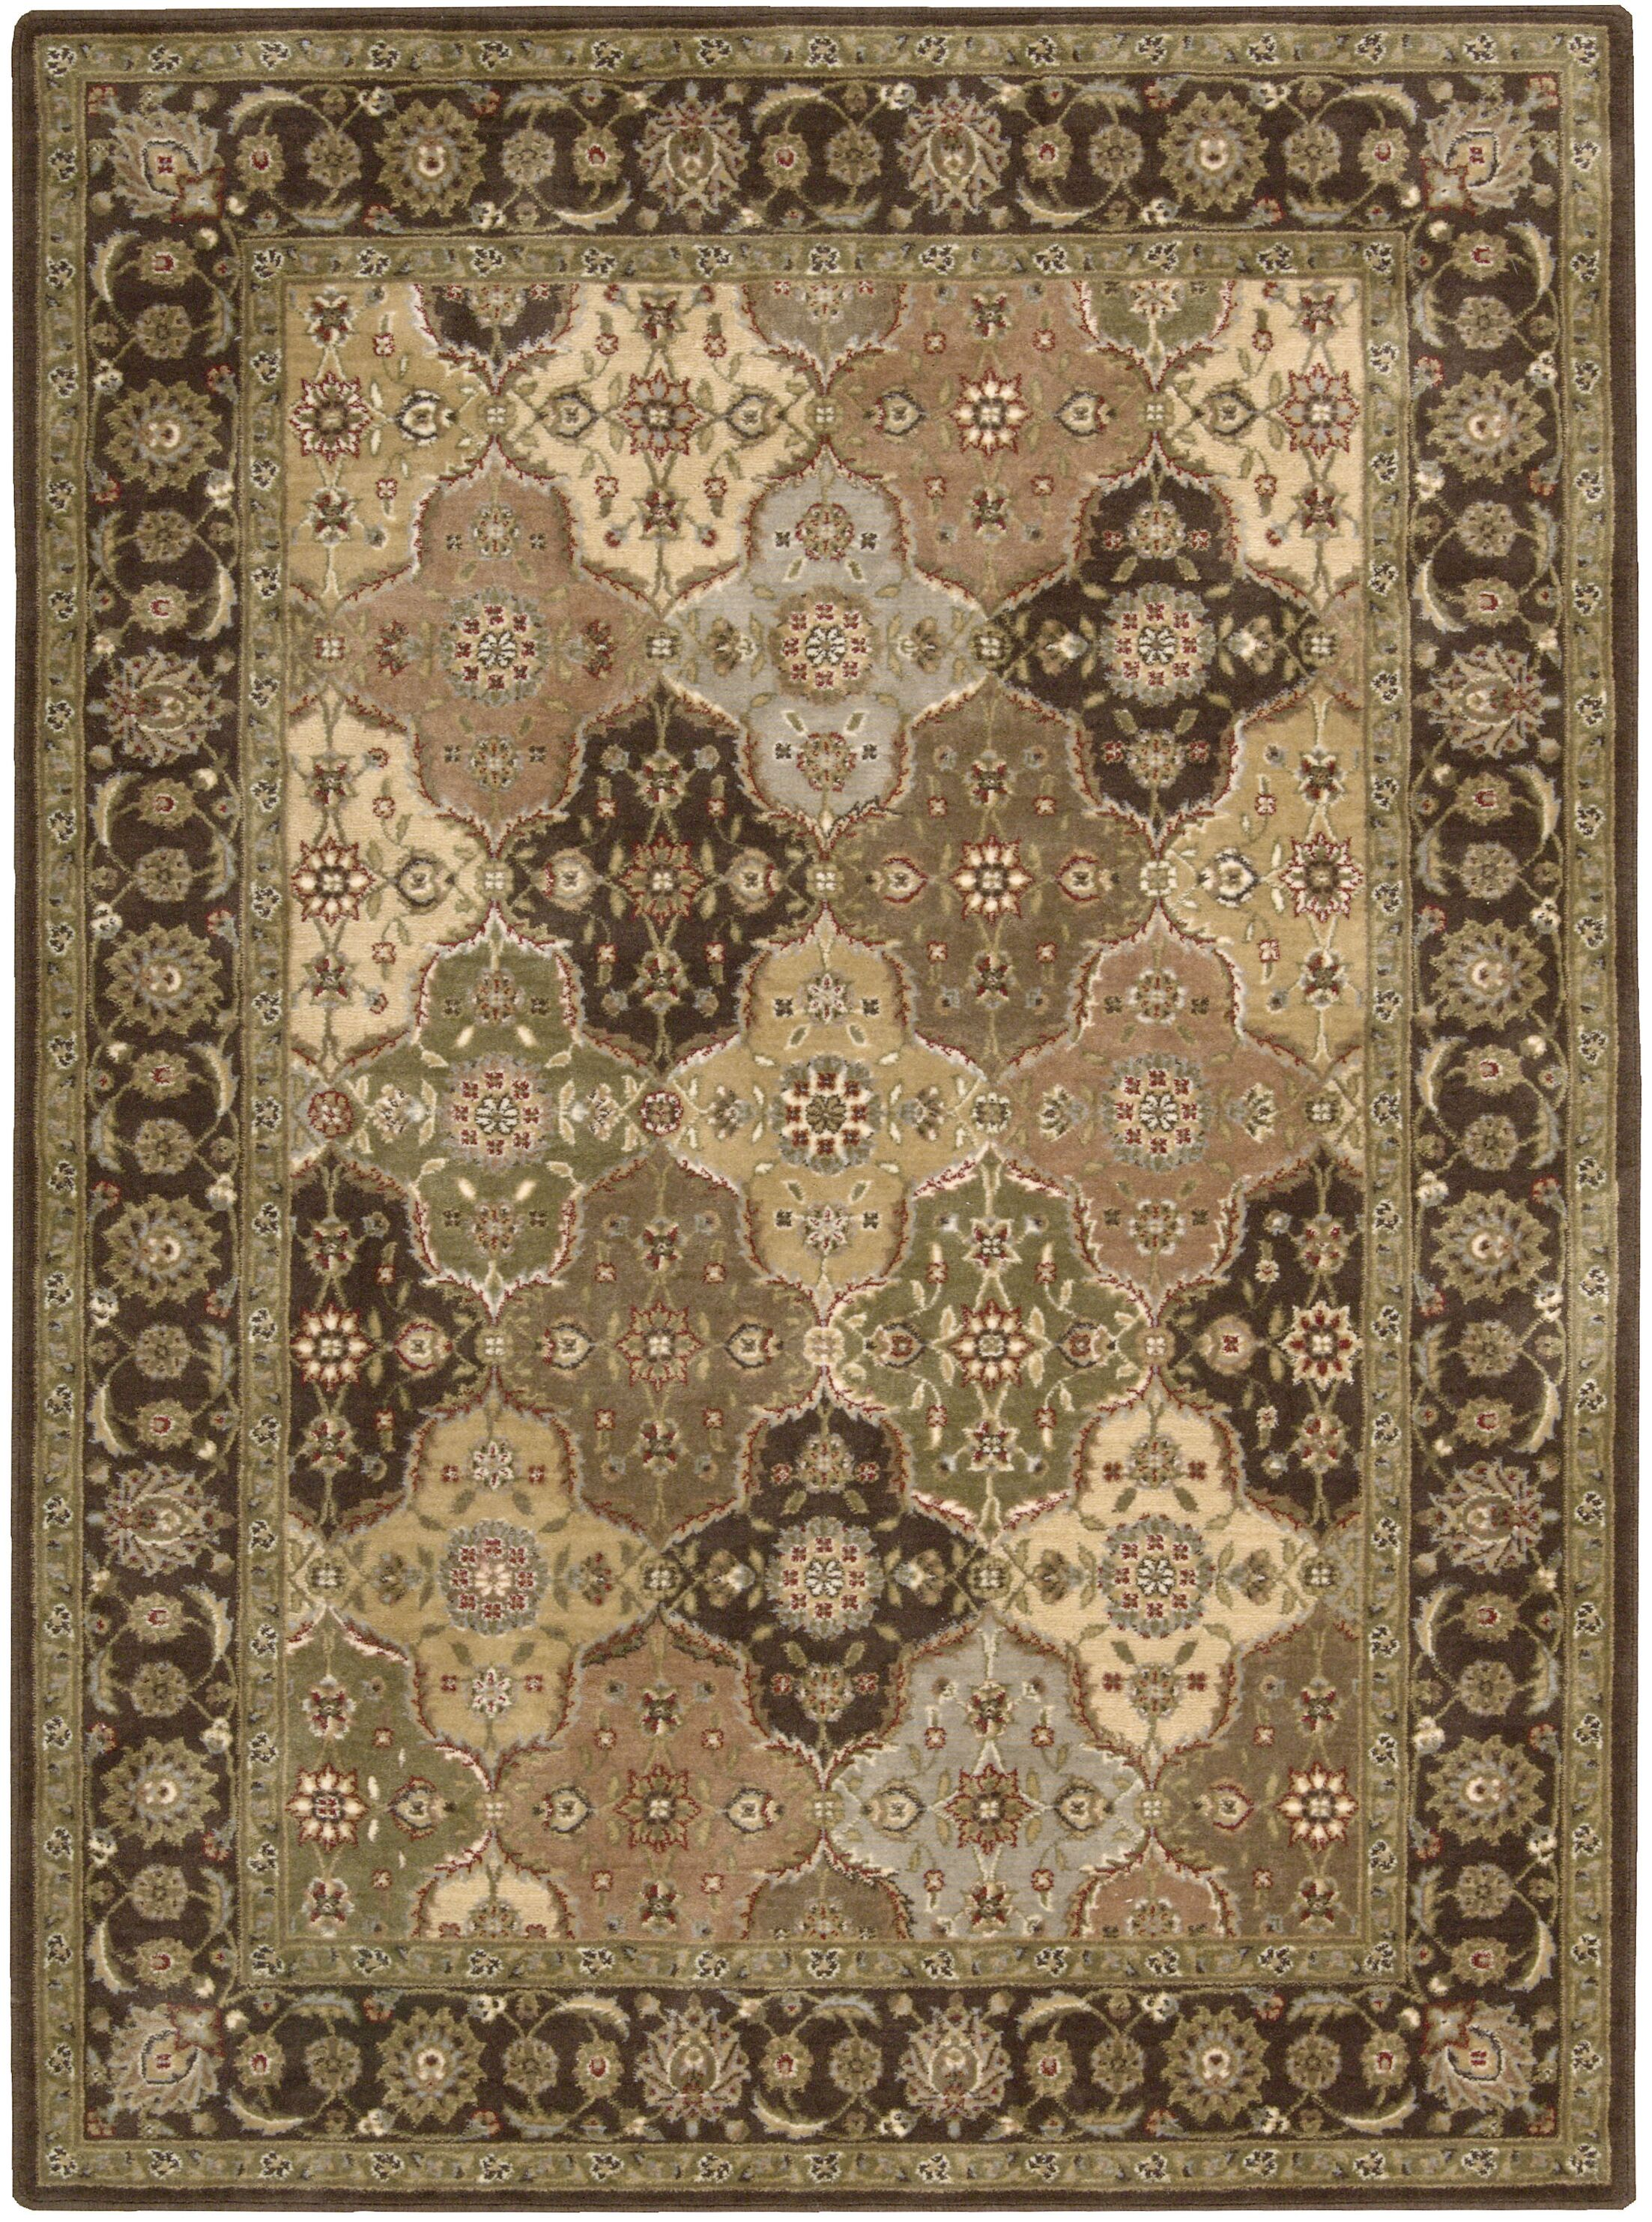 Chalda Hand-Woven Red/Beige Area Rug Rug Size: Rectangle 9'6